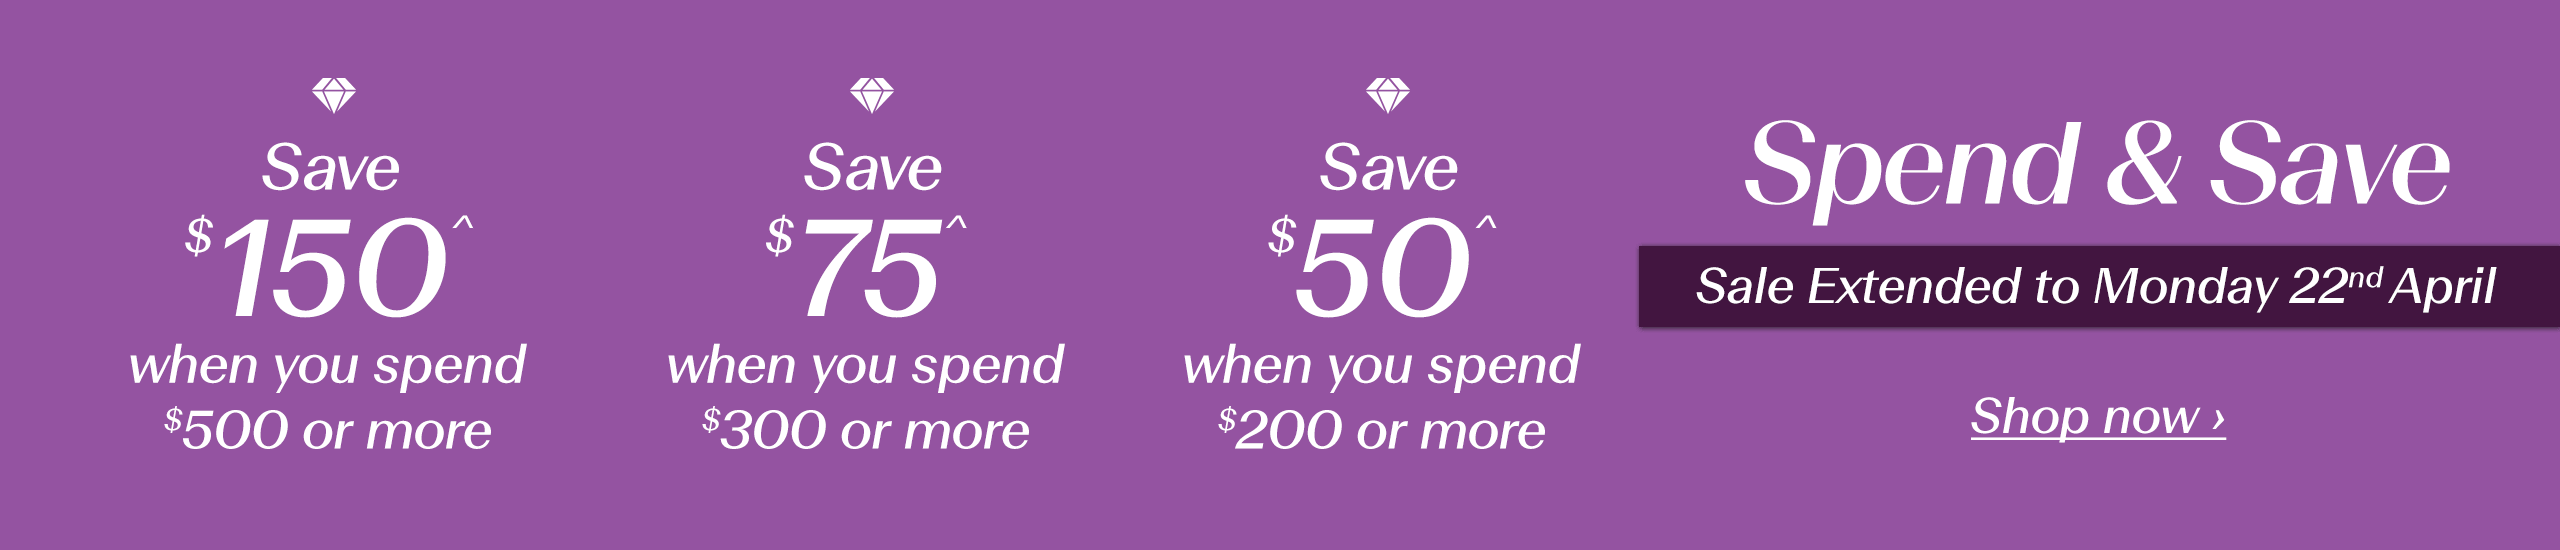 Spend & Save | Shop now ›